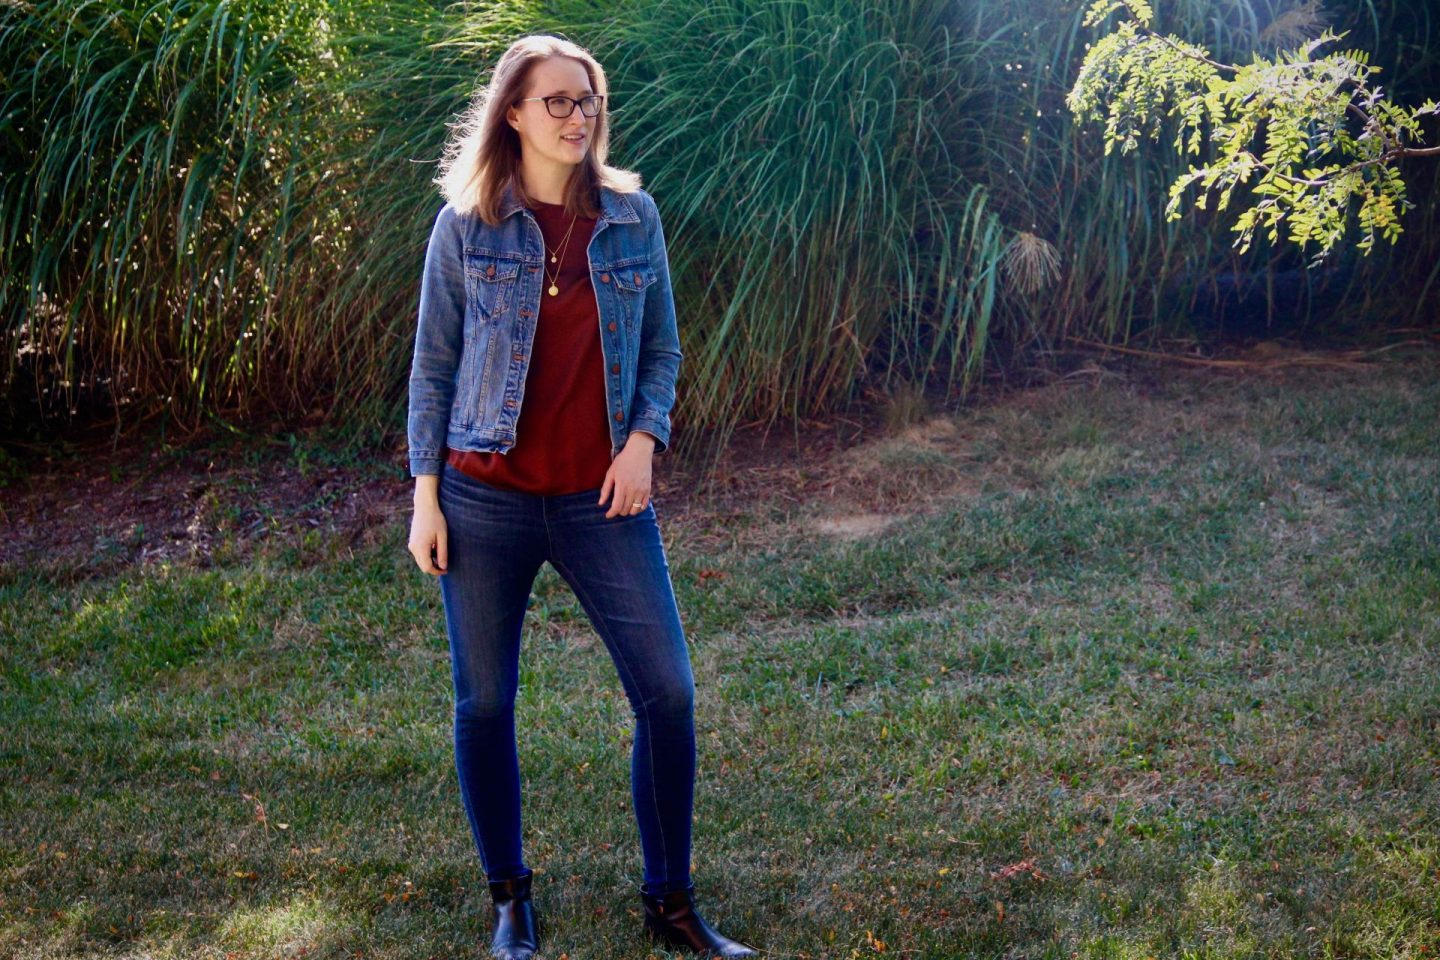 Casual Silk Outfit   Fall Capsule Wardrobe   The Spectacular Adventurer